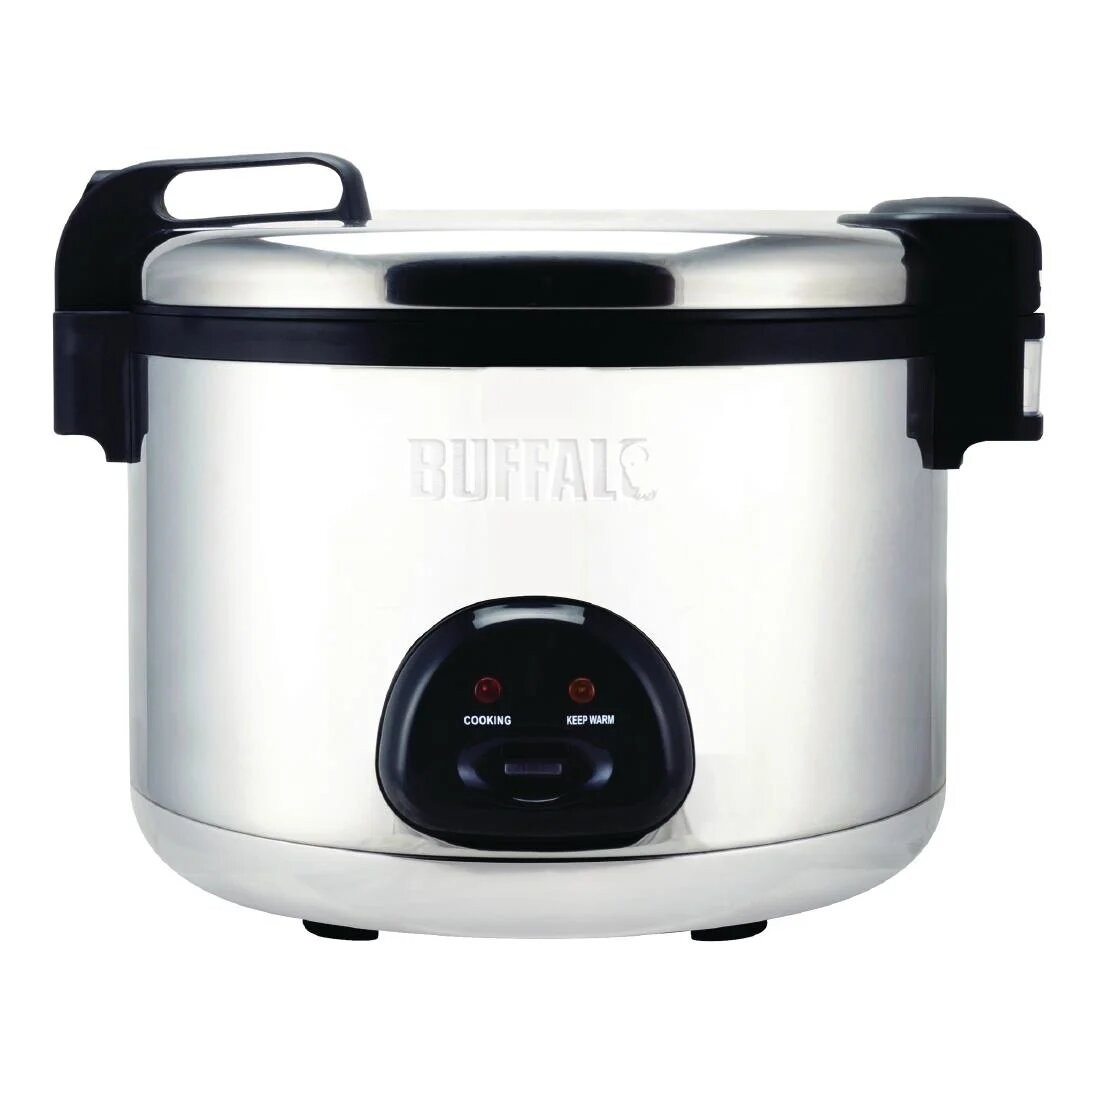 Buffalo CK698 Stainless Steel Non Stick Rice Cooker - 20 Litres